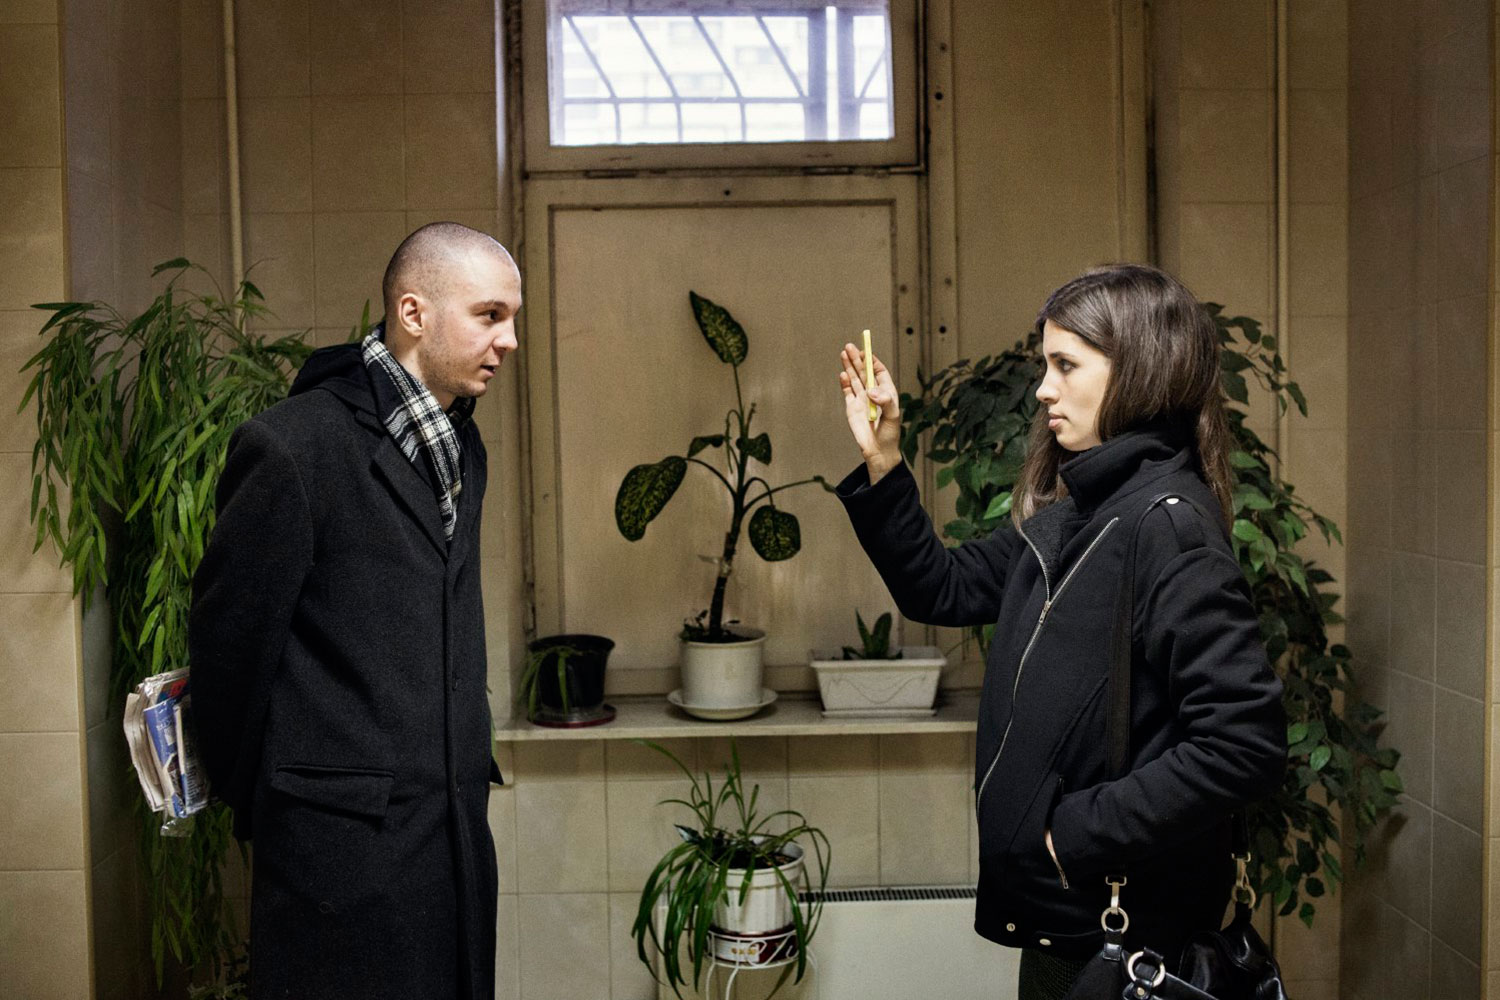 Nadezhda Tolokonnikova is interviewed by Vladimir Akimenkov, one of four defendants in the Bolotnoye case, who has been released on amnesty at the same time as Pussy Riot.